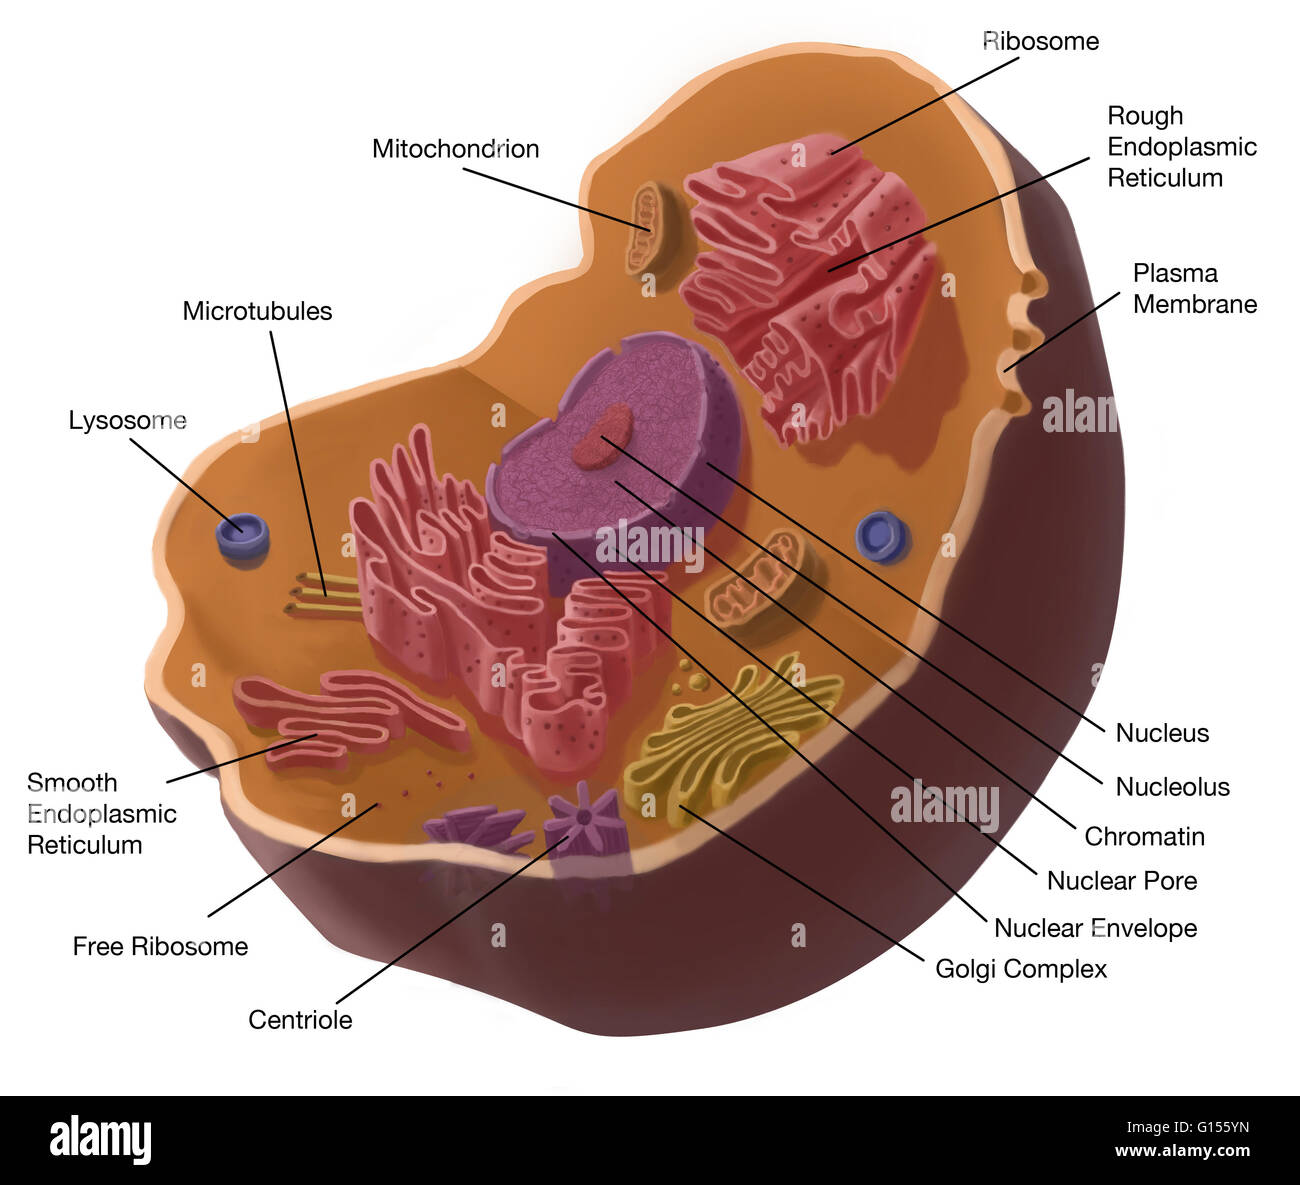 Illustration of animal cell the cell has a nucleus in its center the cell has a nucleus in its center that contains chromatin constituted of dna and nucleole composed of rna and proteins around the nucleus we find ccuart Image collections